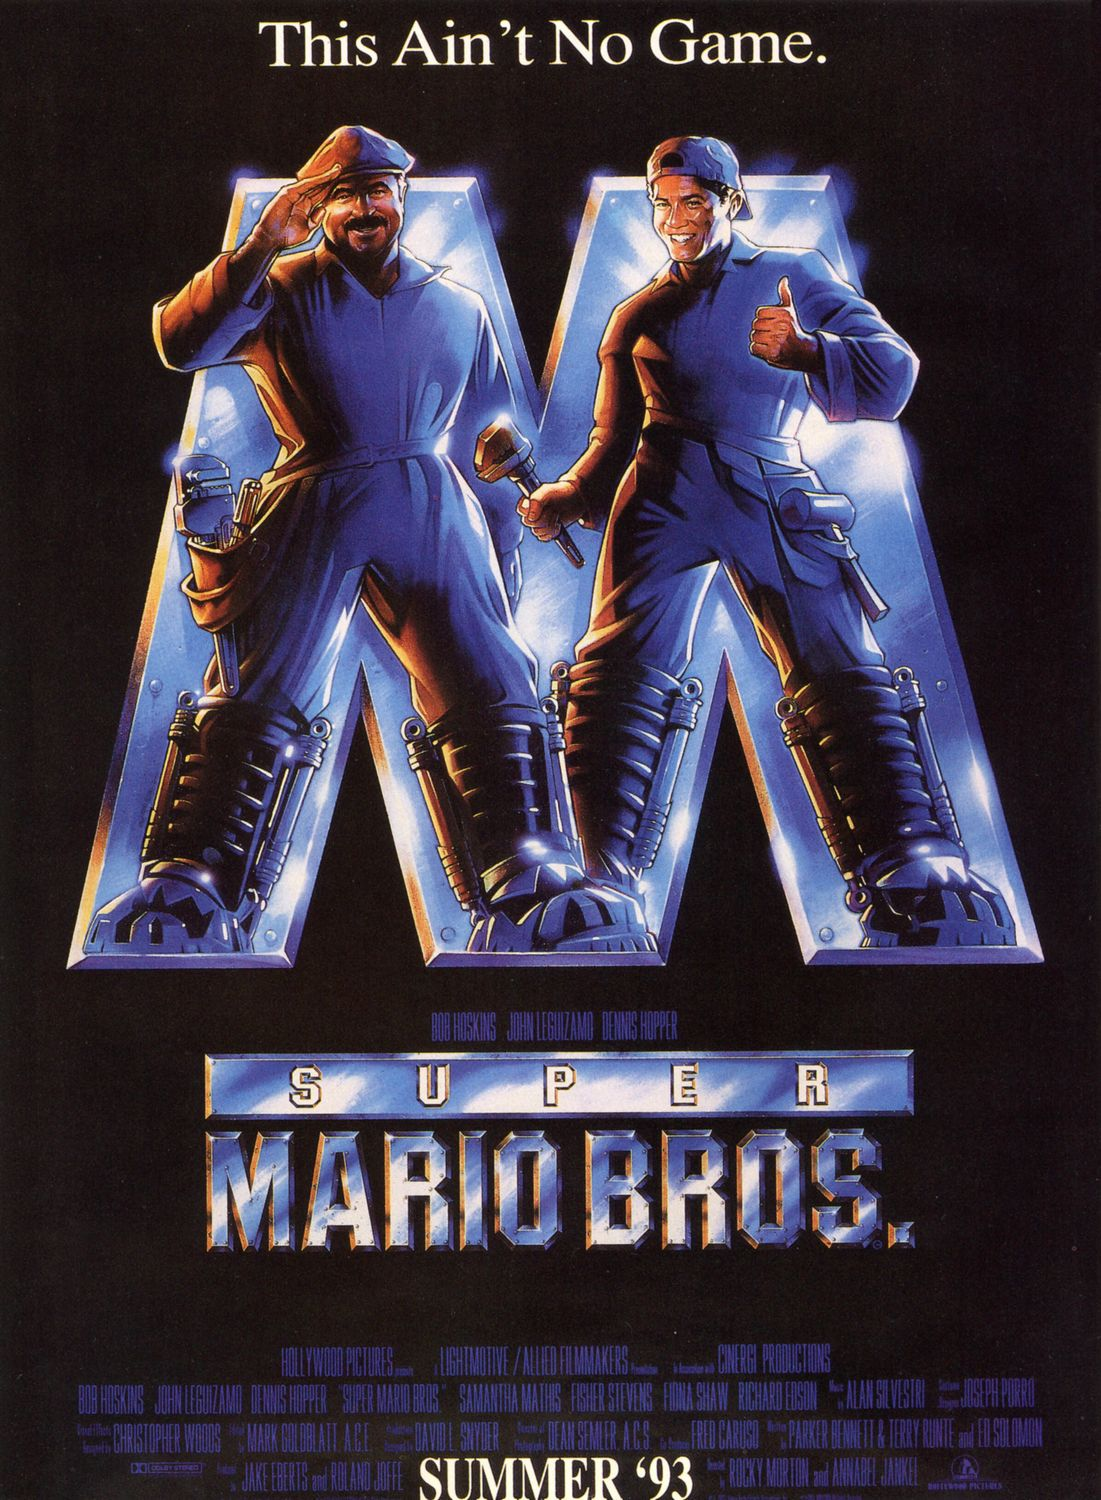 THE SUPER MARIO BRO MOVIE OFFICIAL DRINKING GAME